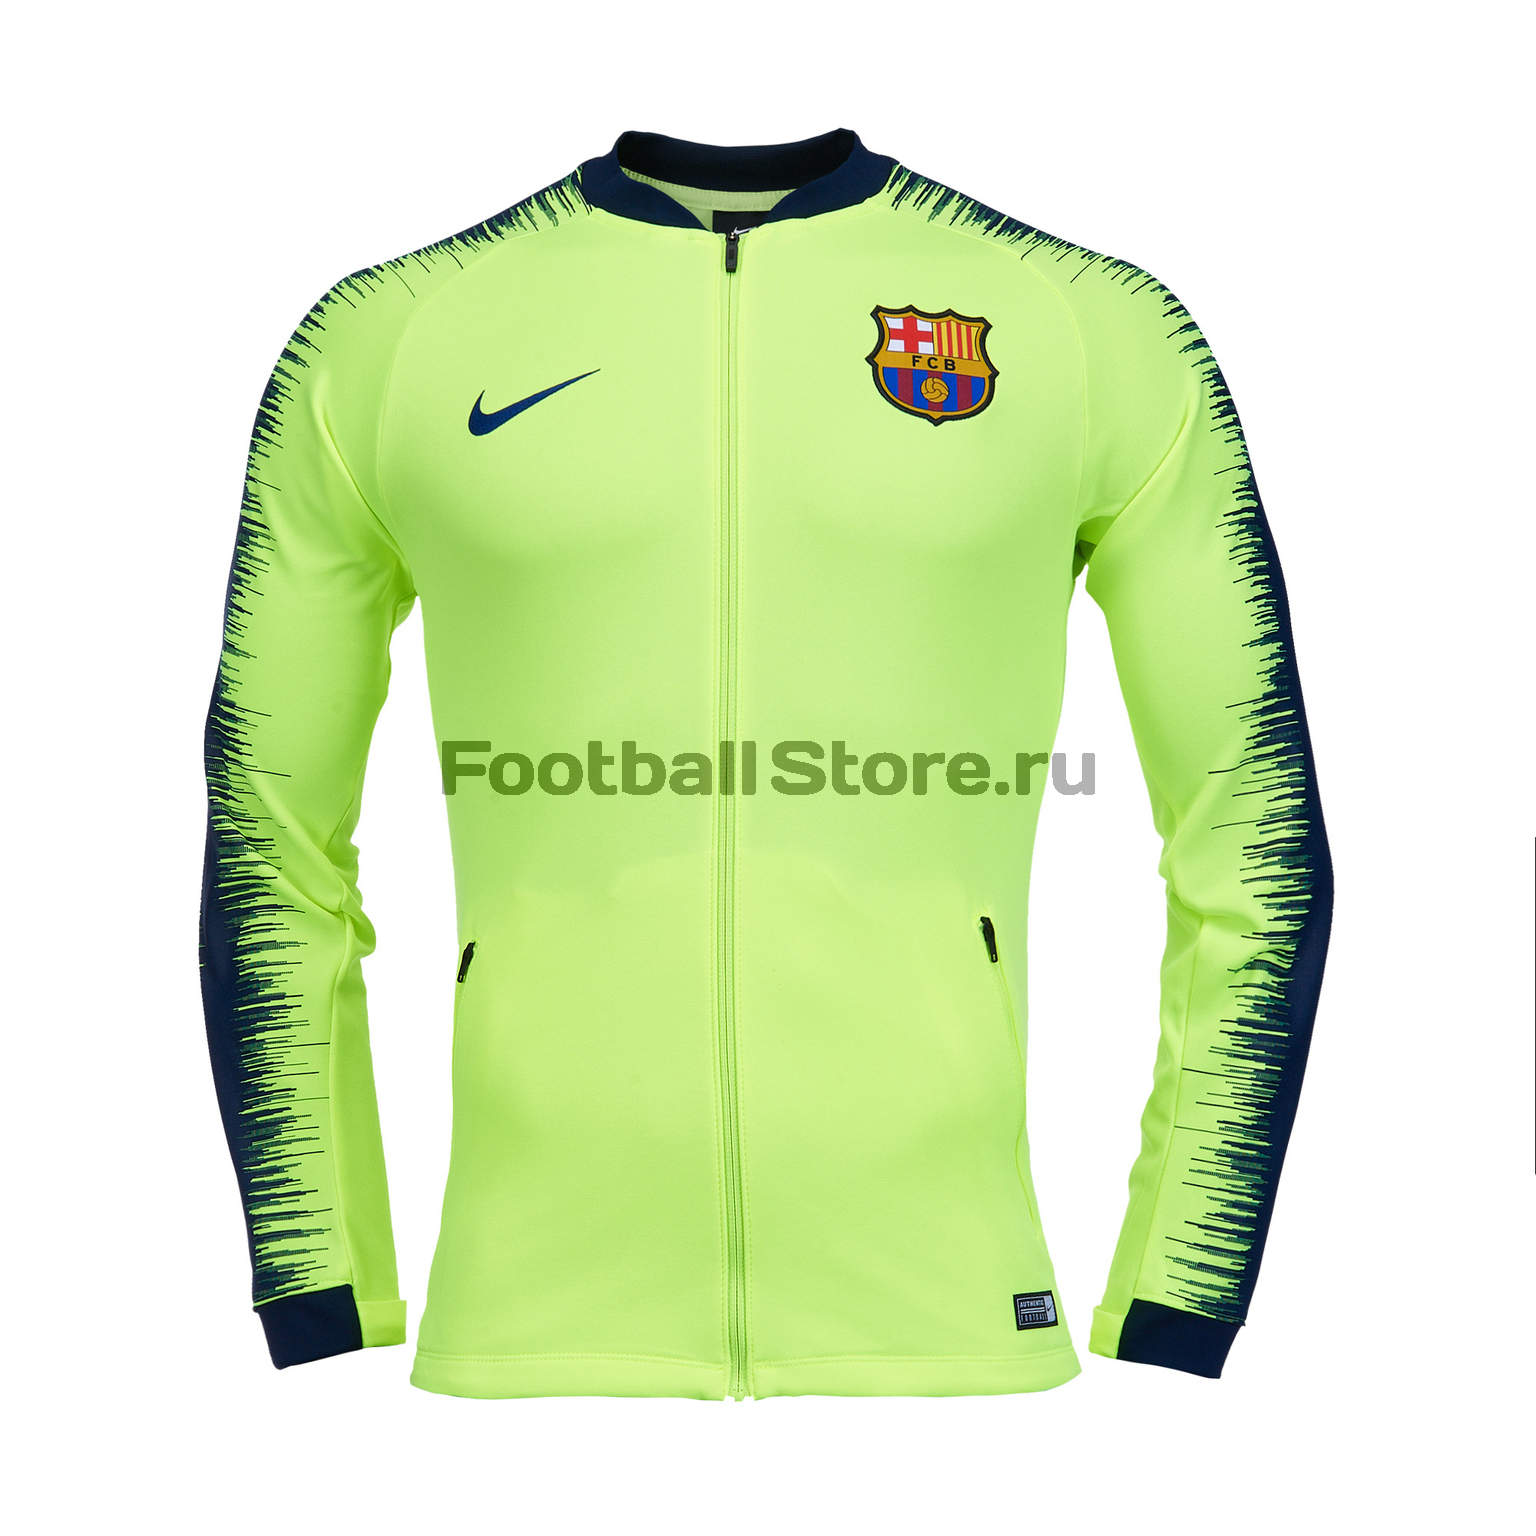 Олимпийка Nike FC Barcelona JKT 894361-705 олимпийка мужская adidas tan club h jkt цвет черный dw9360 размер xs 40 42